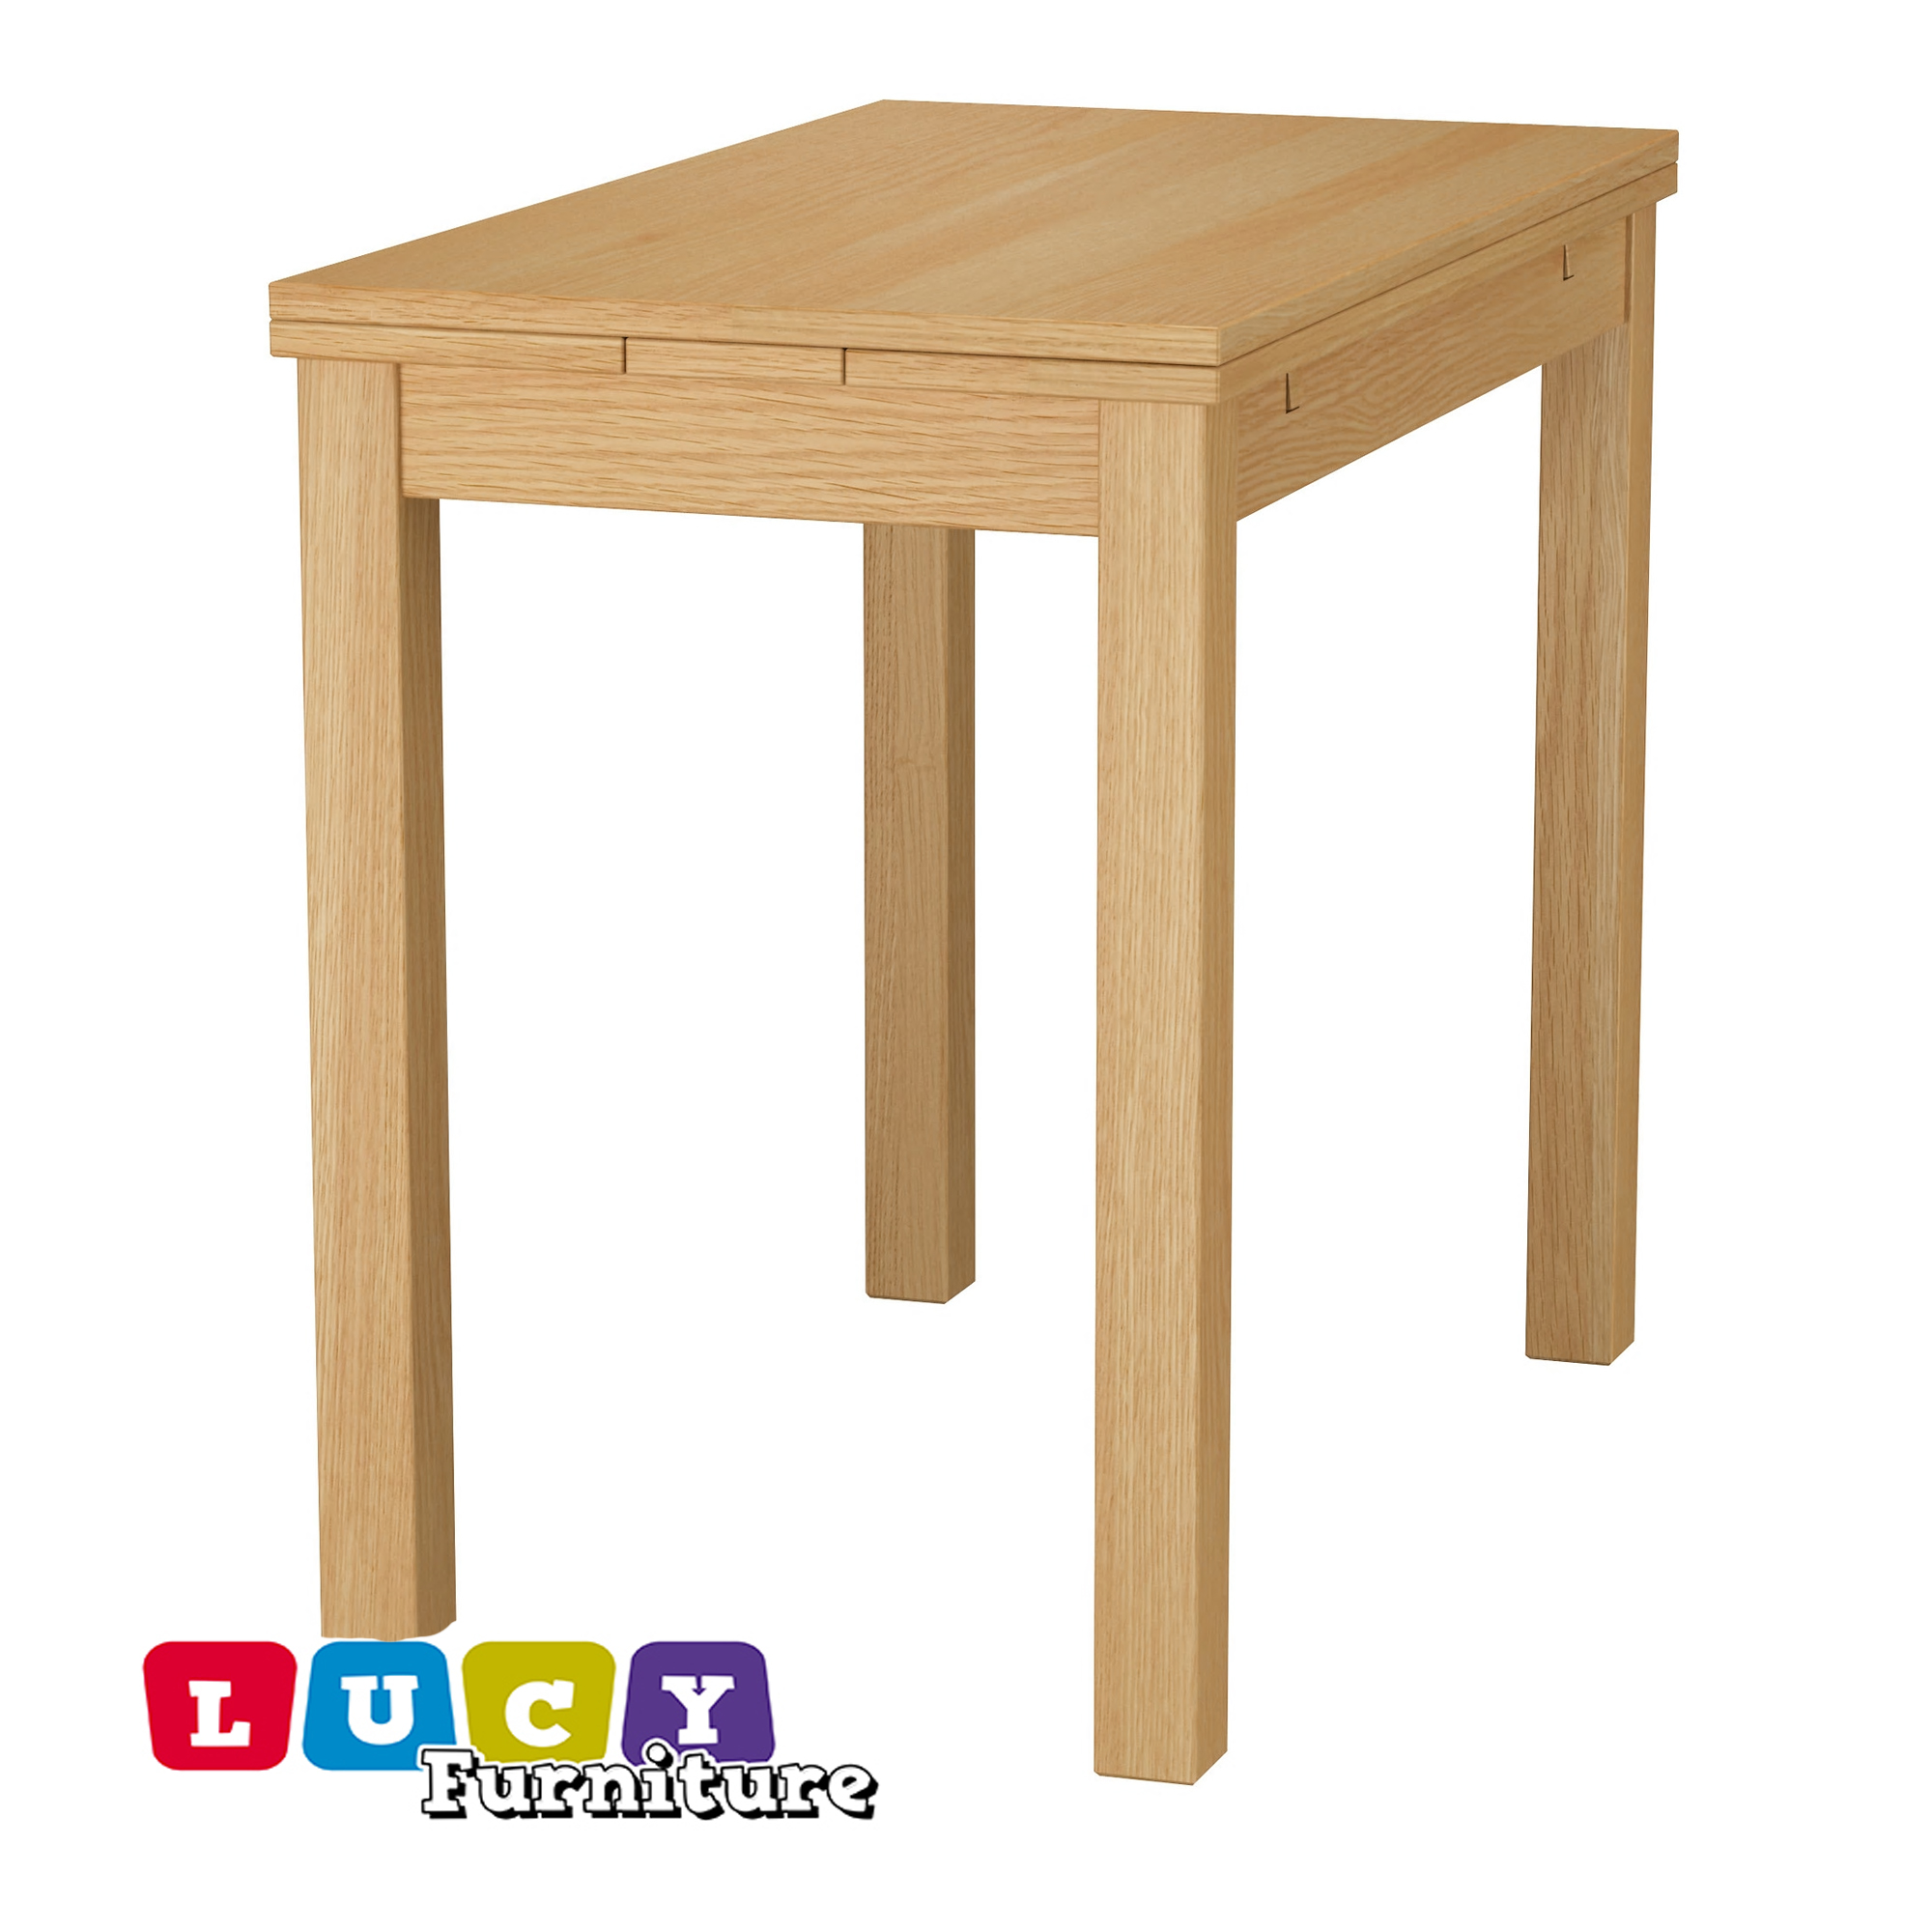 Ikea Bjursta Bank Details About Ikea Bjursta Extendable Table Oak Veneer New